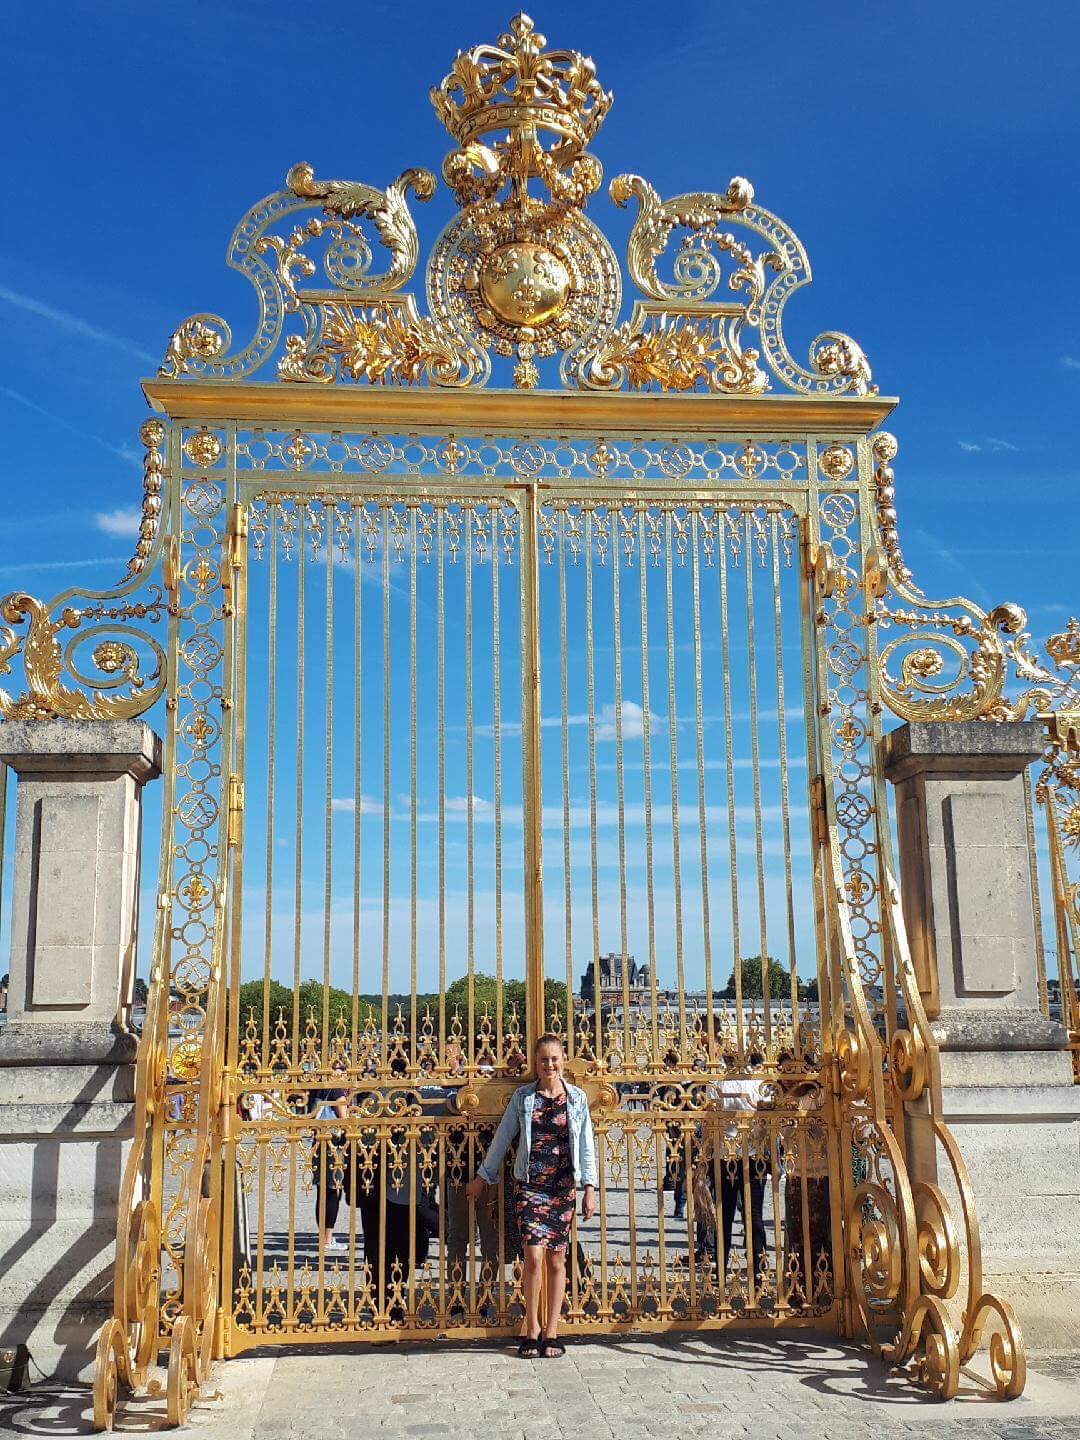 Sarah Jane standing in front of Palace of Versailles, 'Golden Gates'